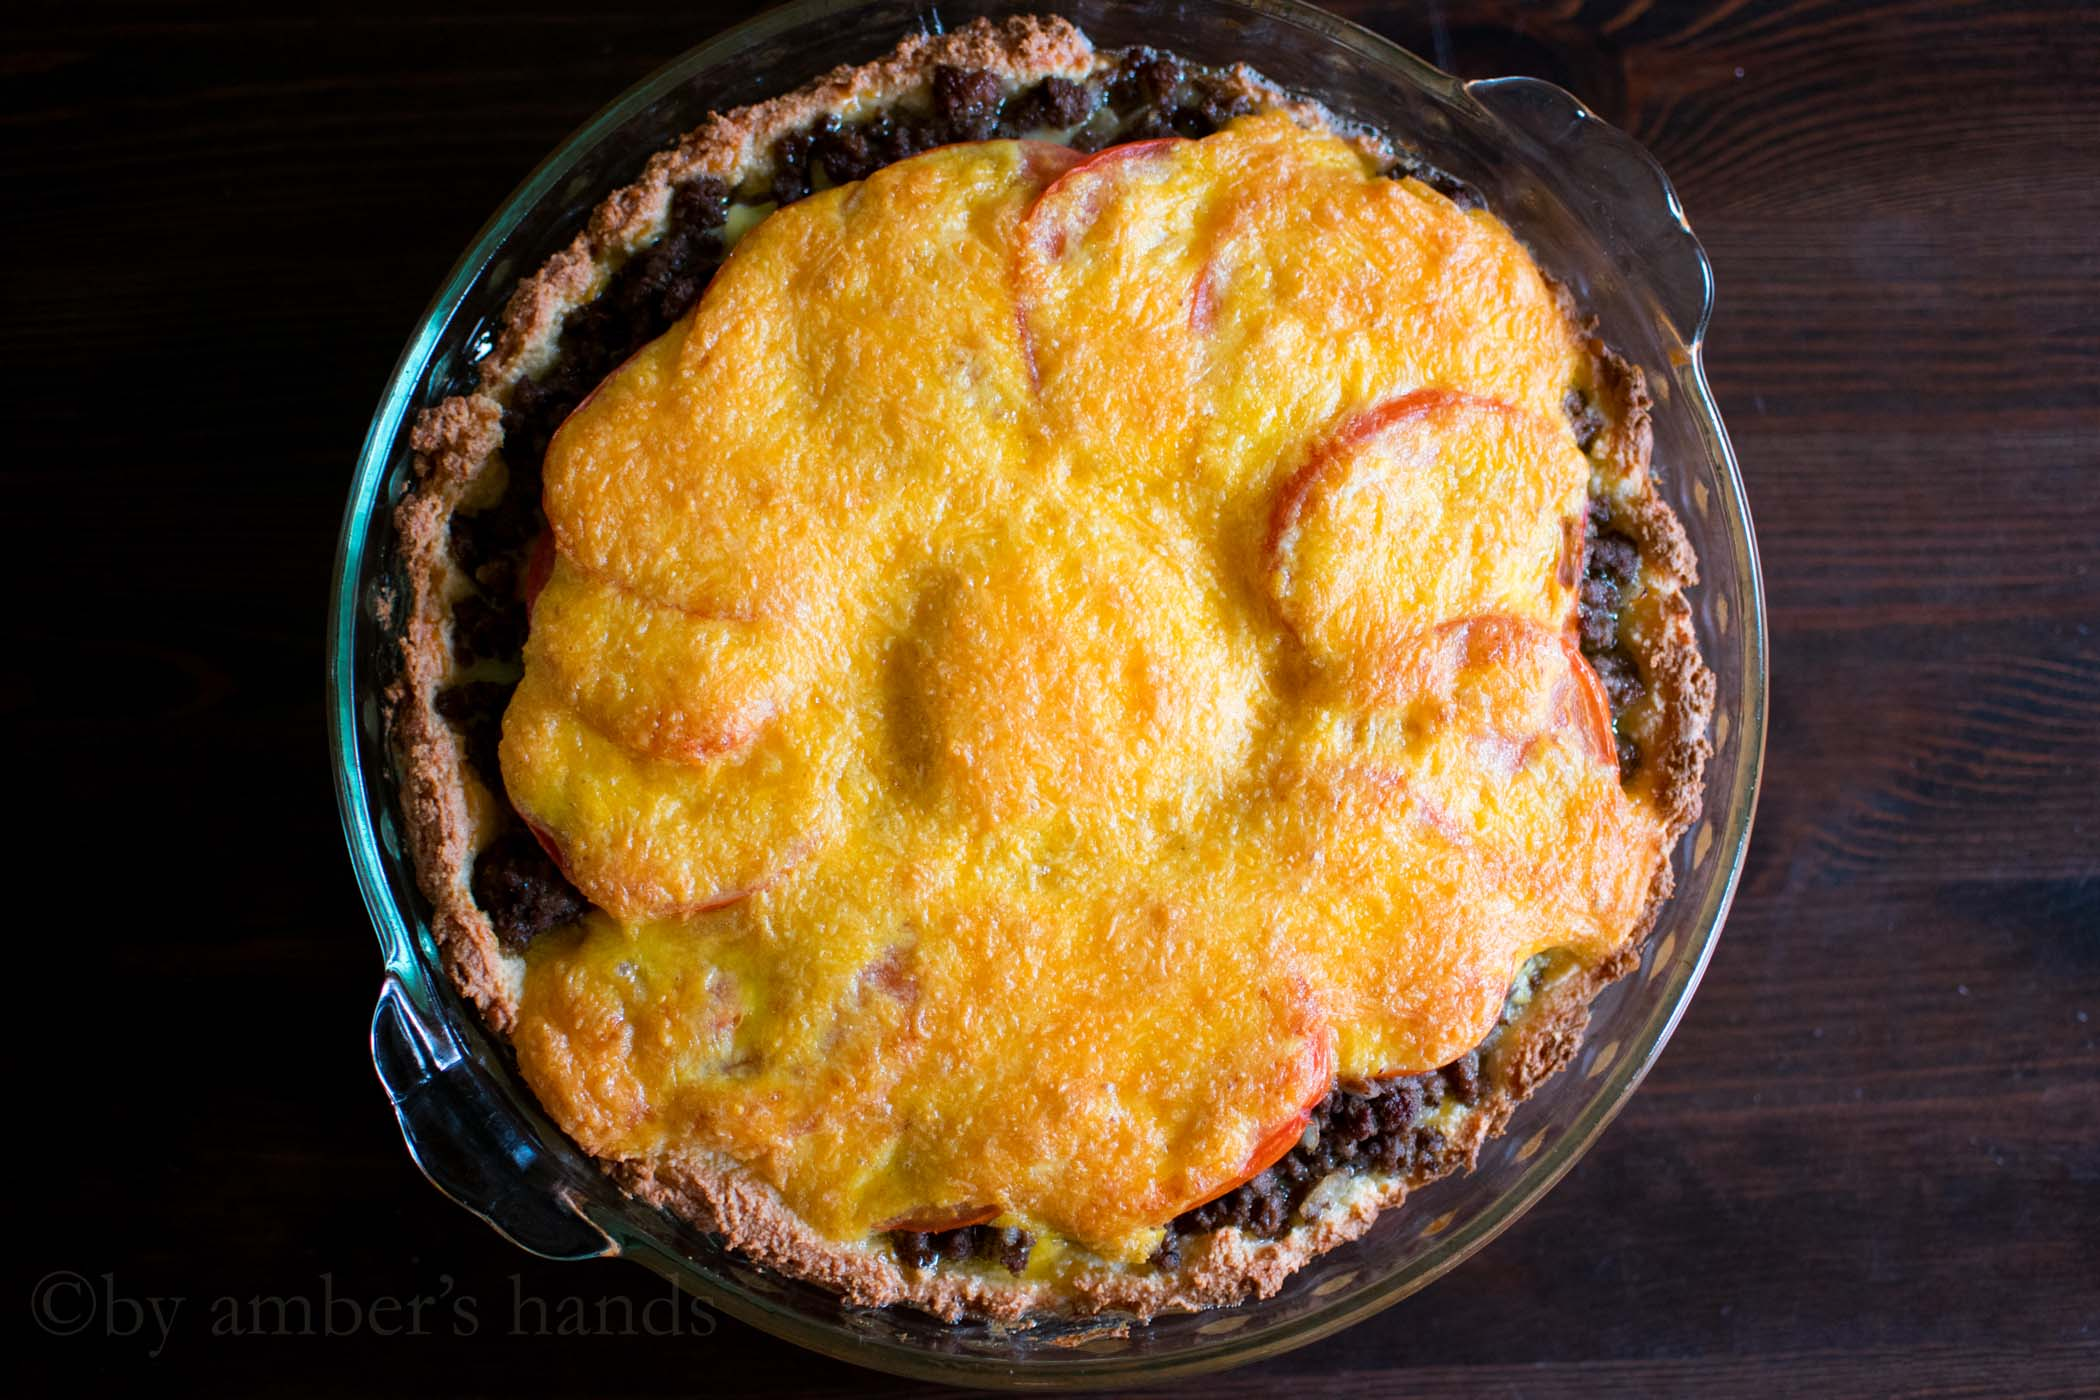 Cheeseburger pie after baking